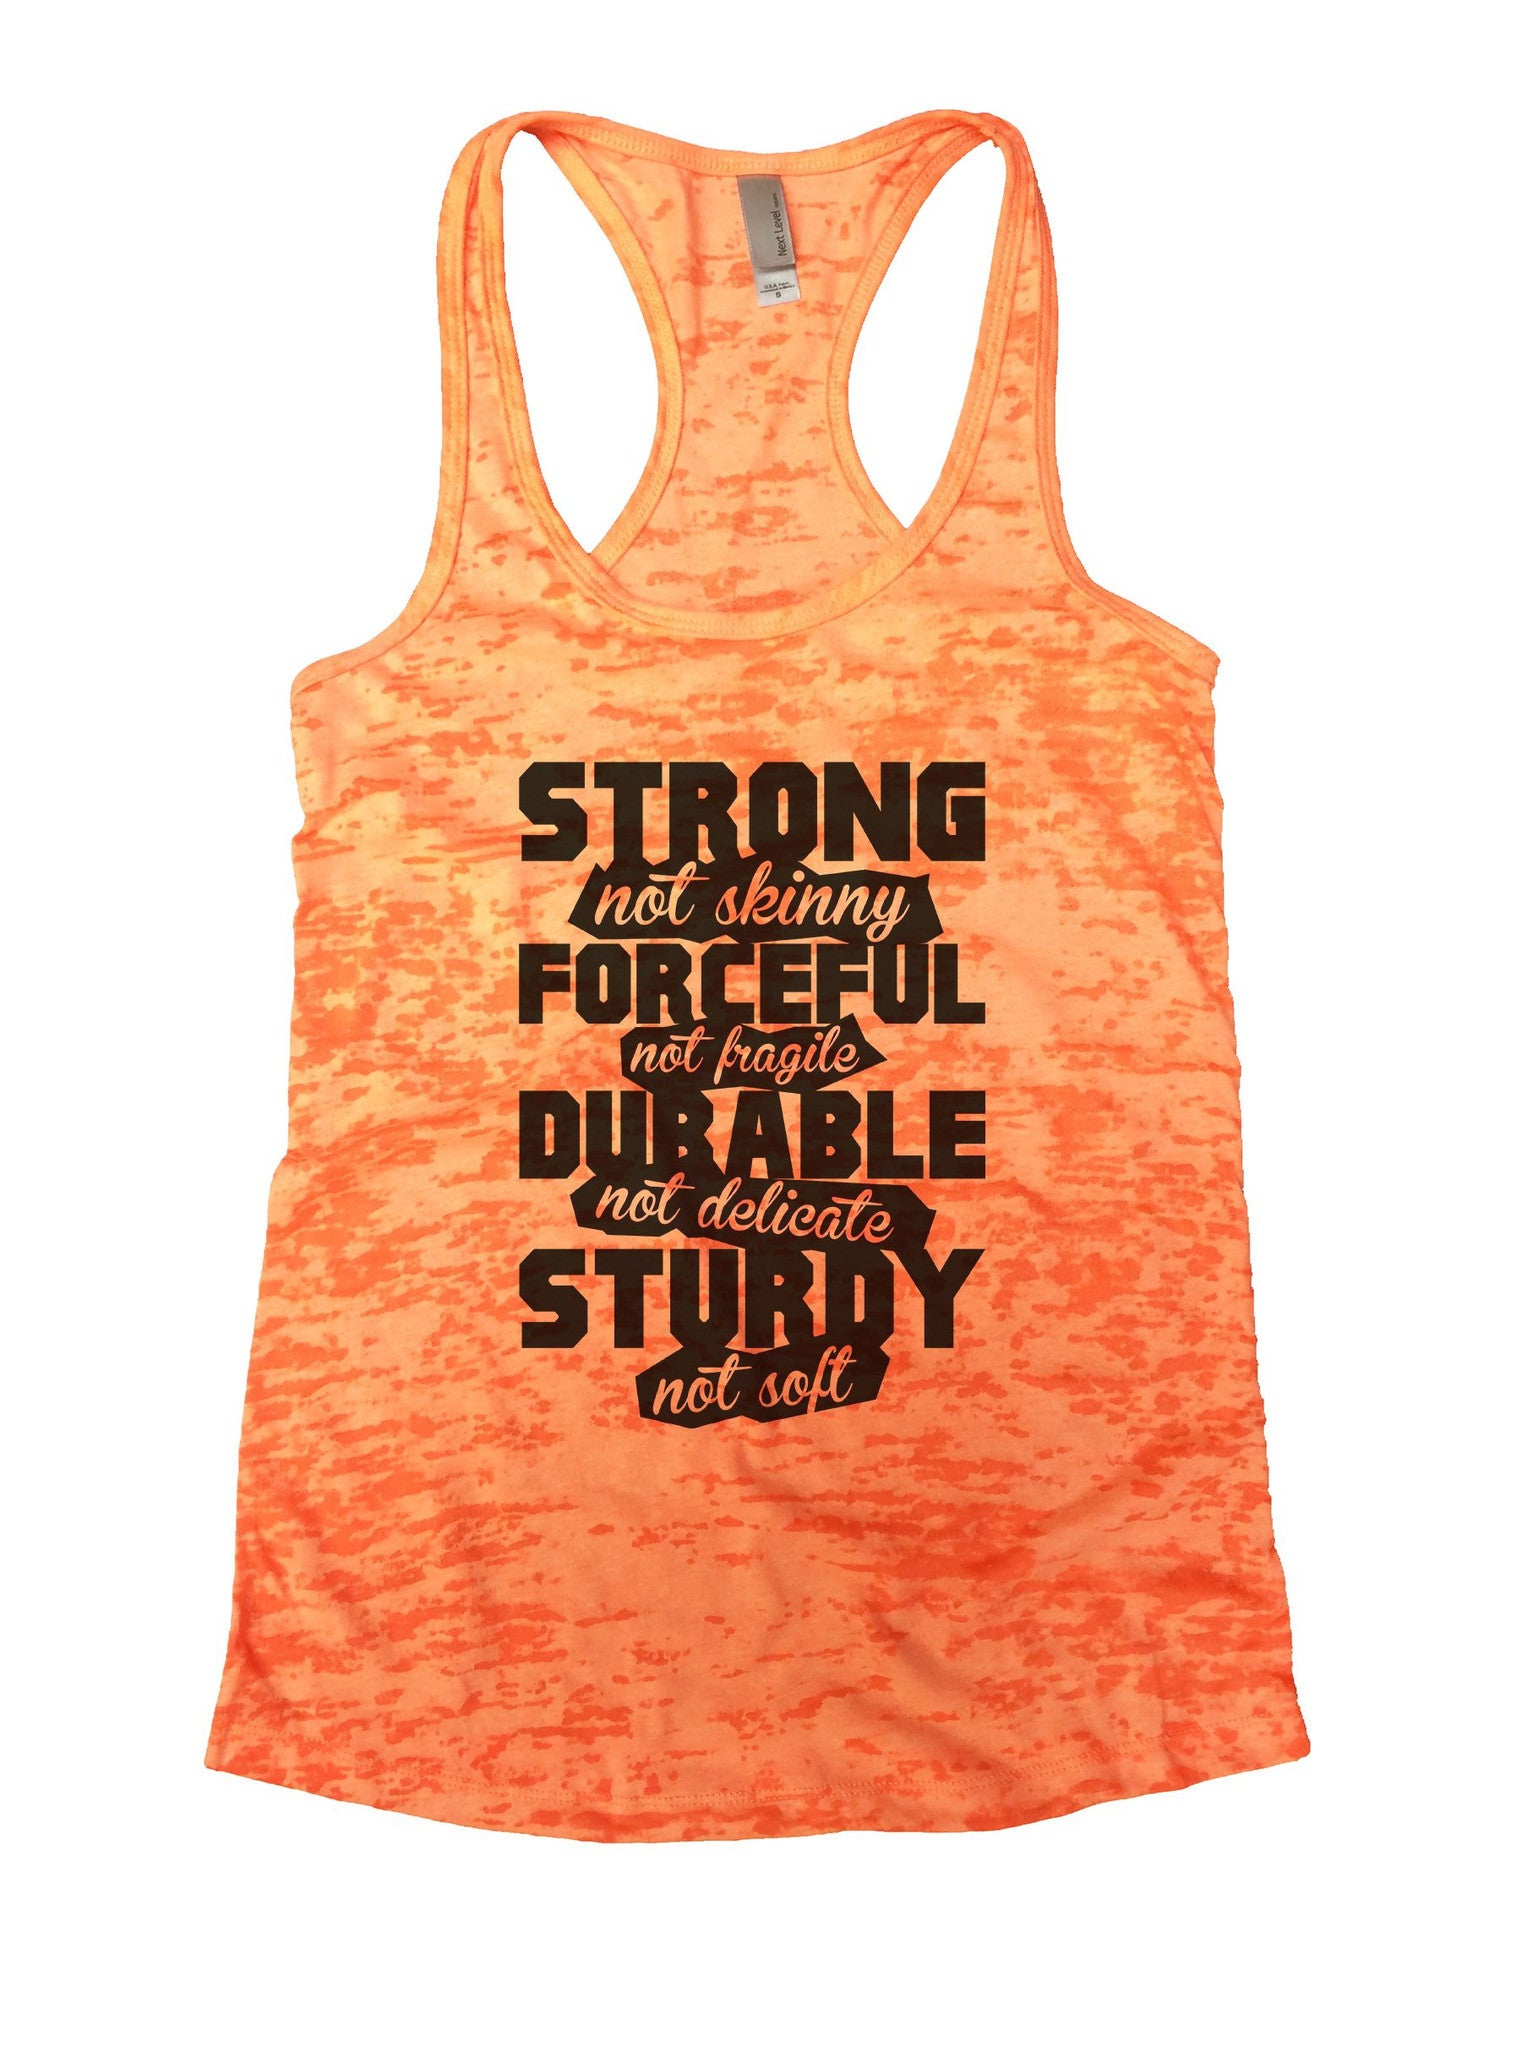 Strong Not Skinny Forceful Not Fragile Durable Not Delicate Sturdy Not Soft Burnout Tank Top By BurnoutTankTops.com - 845 - Funny Shirts Tank Tops Burnouts and Triblends  - 3